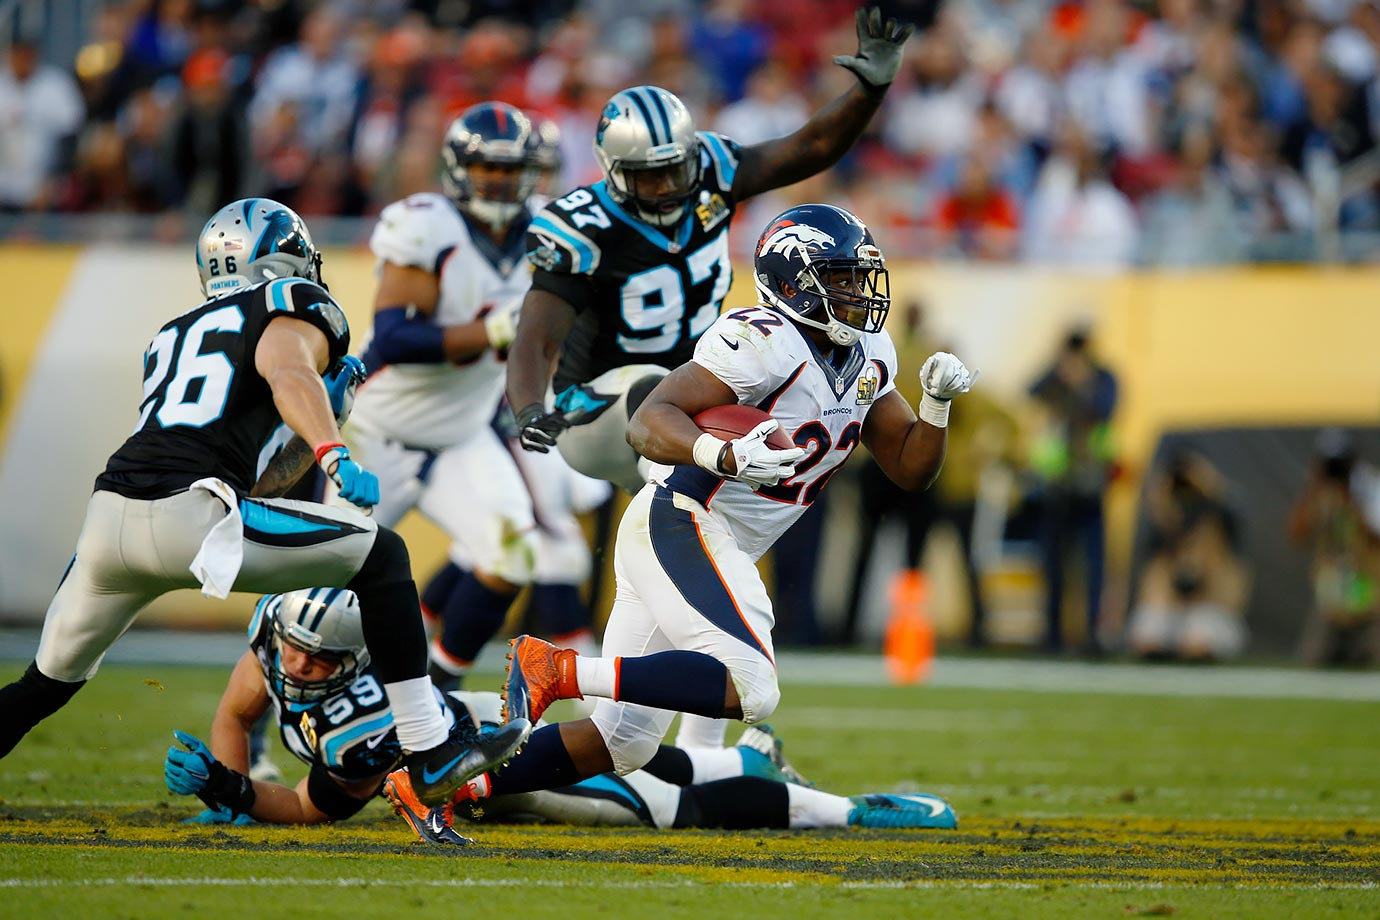 C.J. Anderson ripped off an impressive 34-yard run in the second quarter.